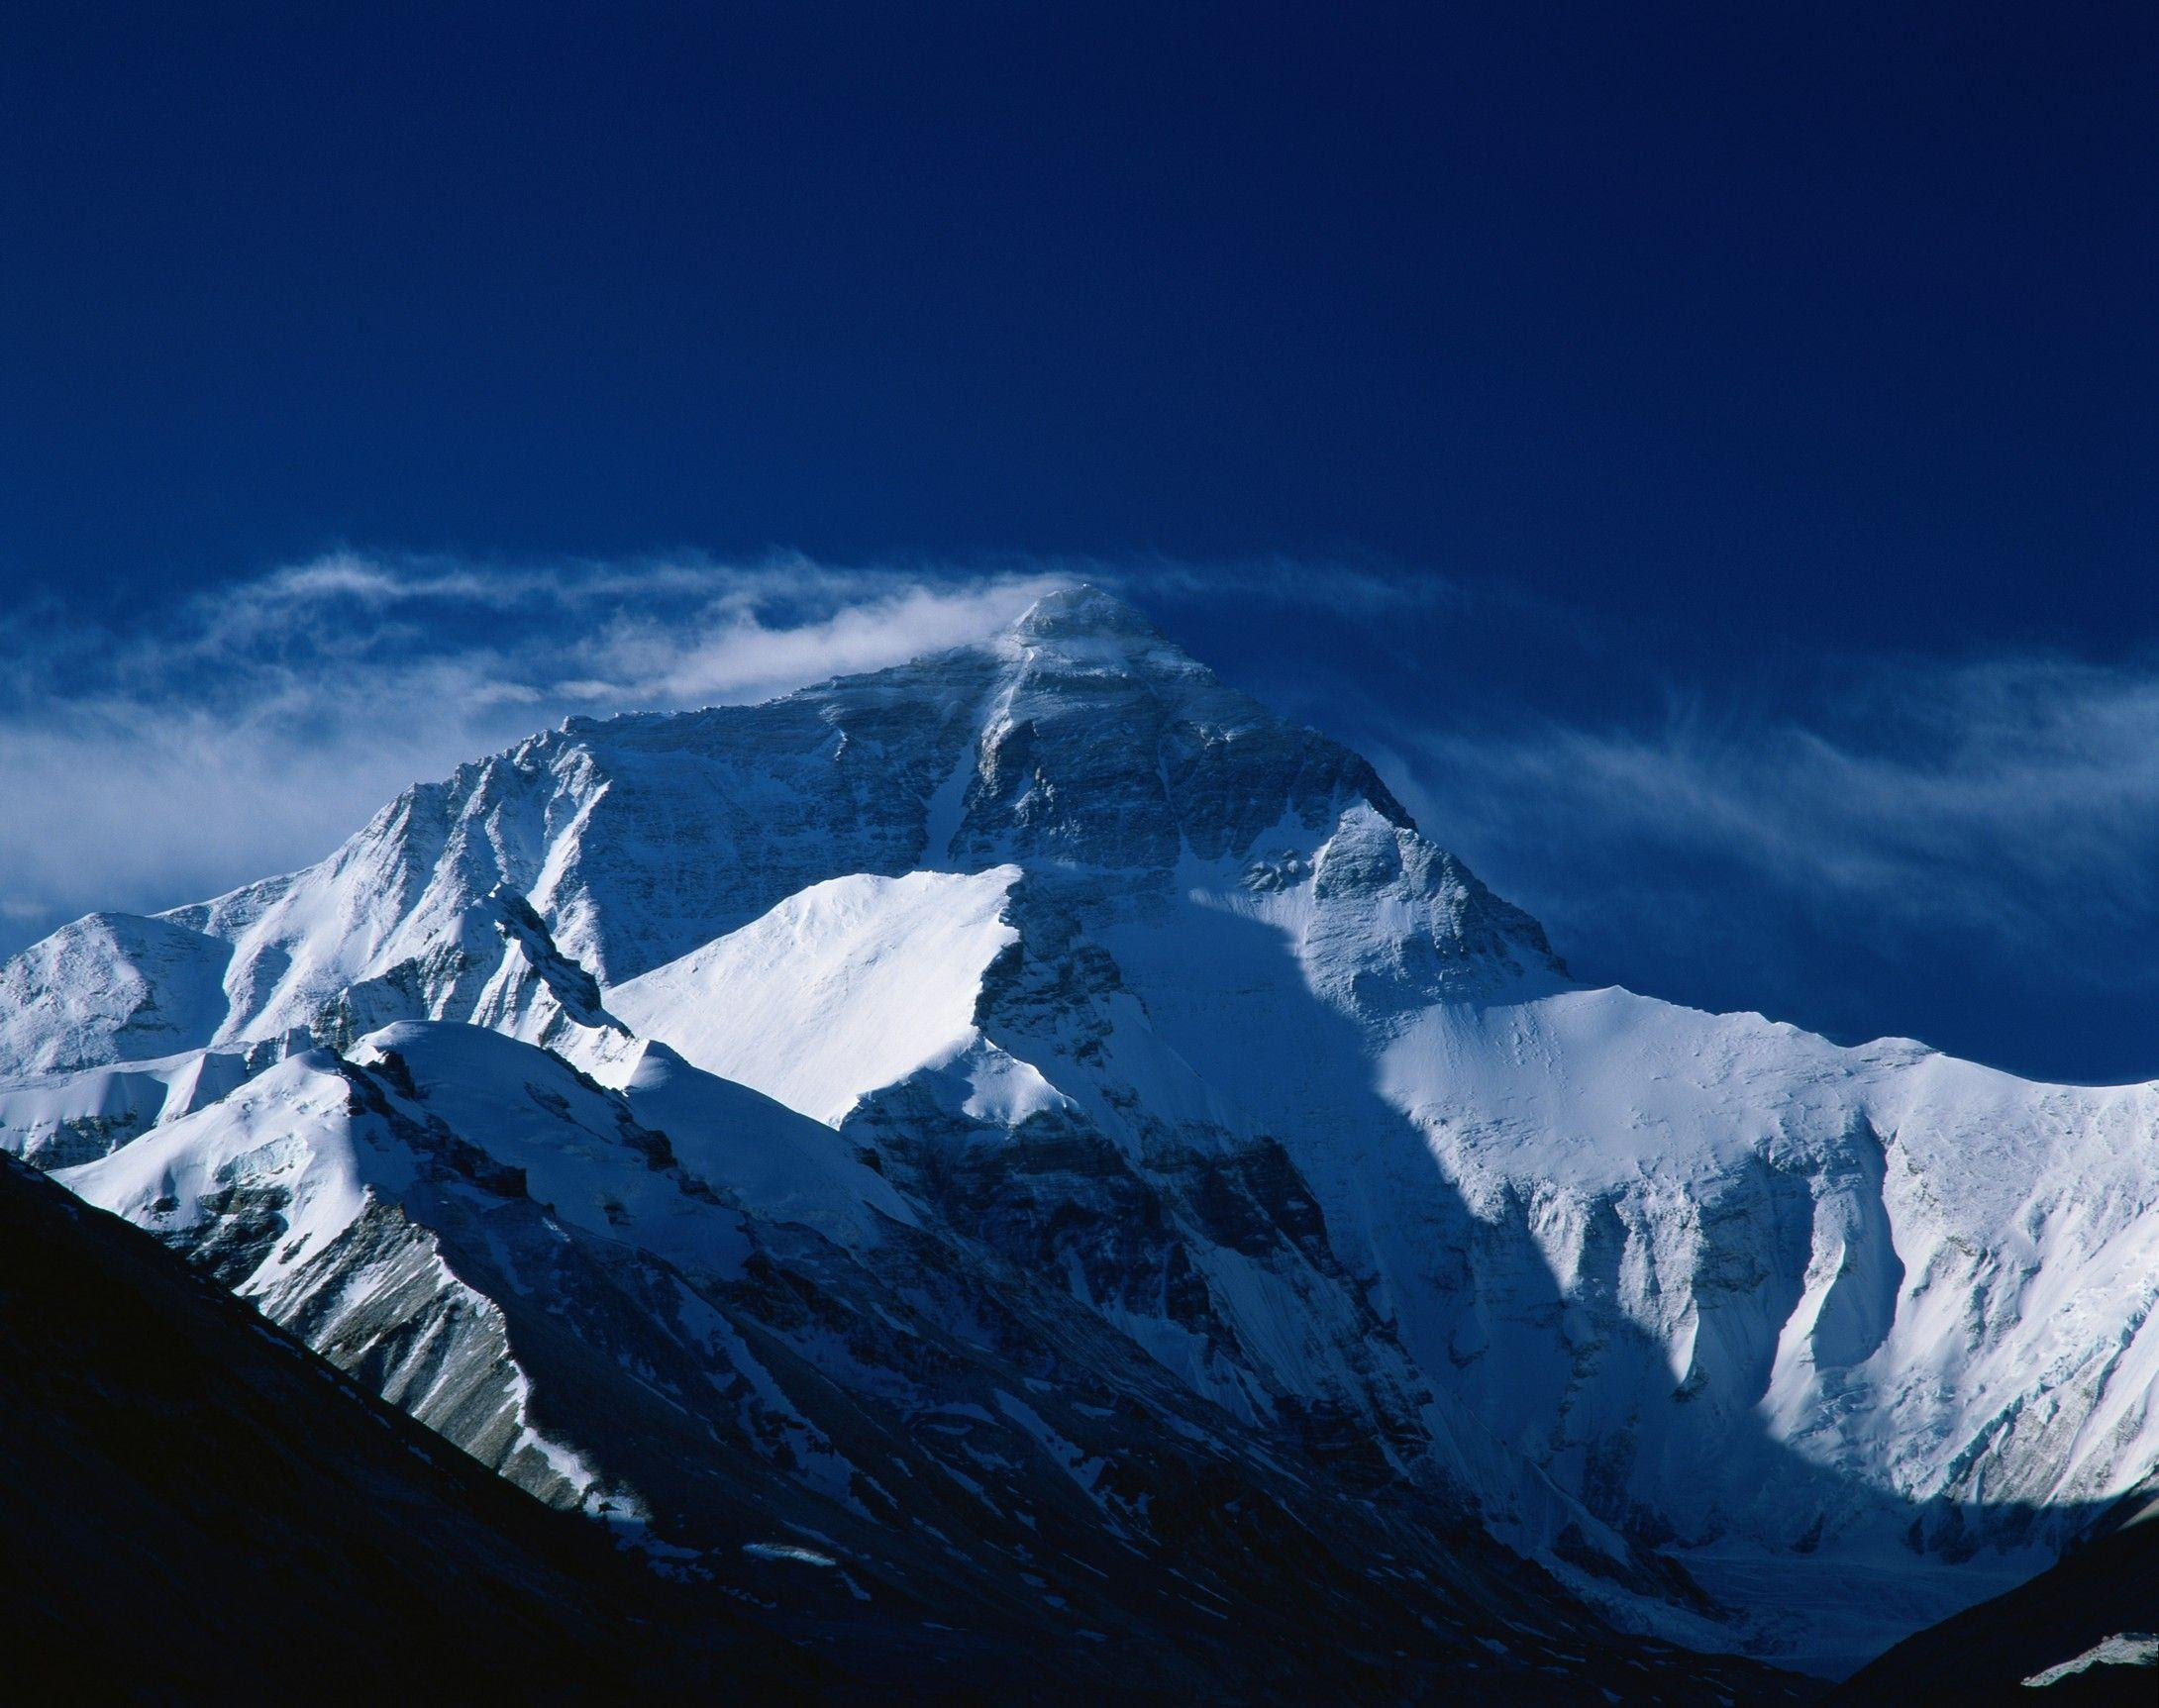 Everest Wallpapers - Wallpaper Cave